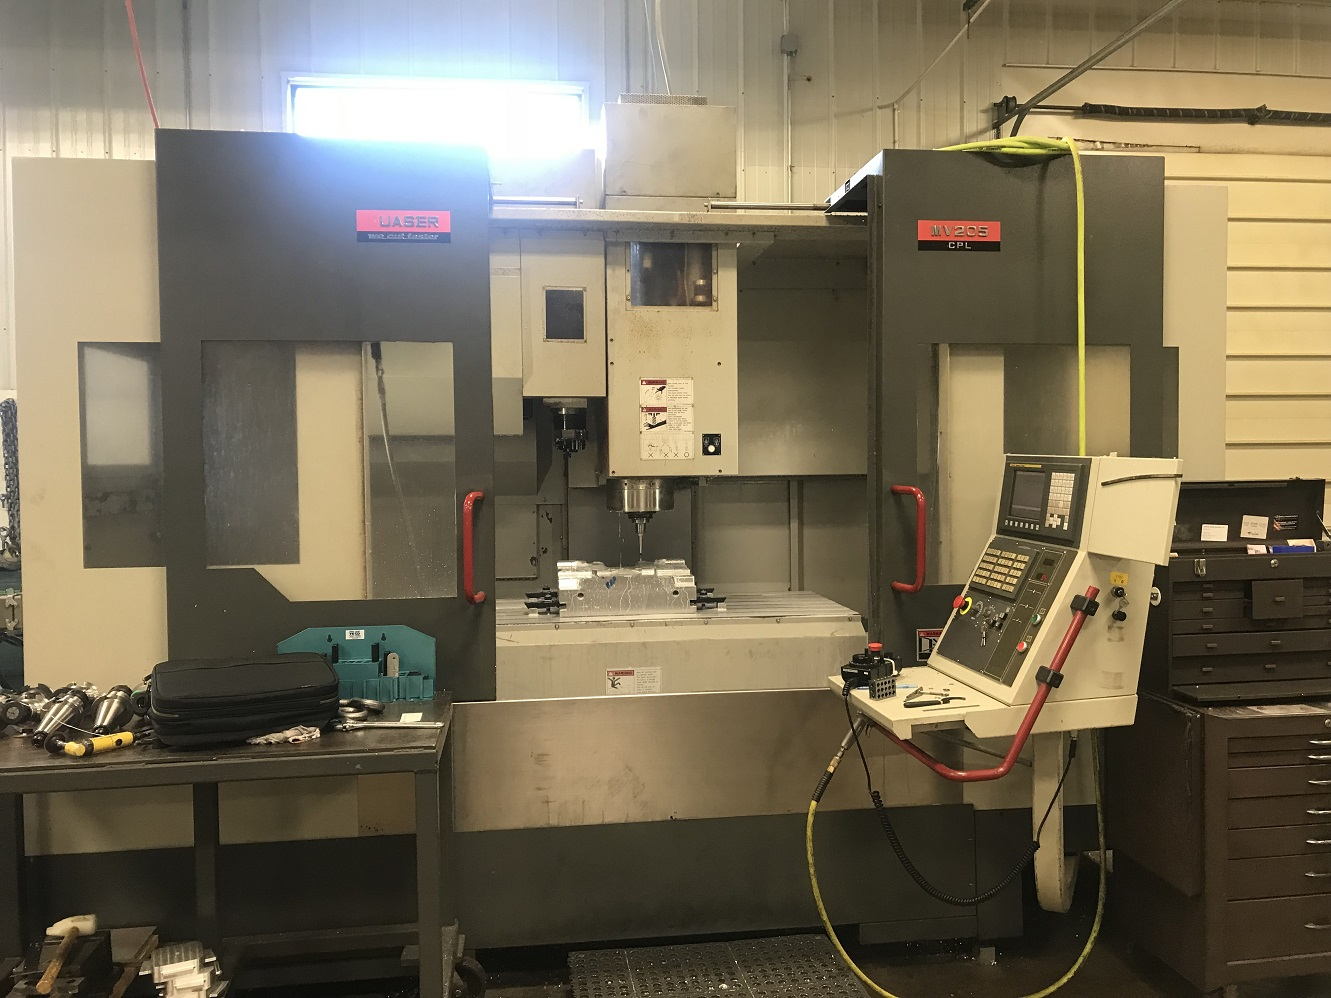 QUASER MODEL MV205 CNC VERTICAL MACHINING CENTER WITH 50 TAPER GEARED HEAD